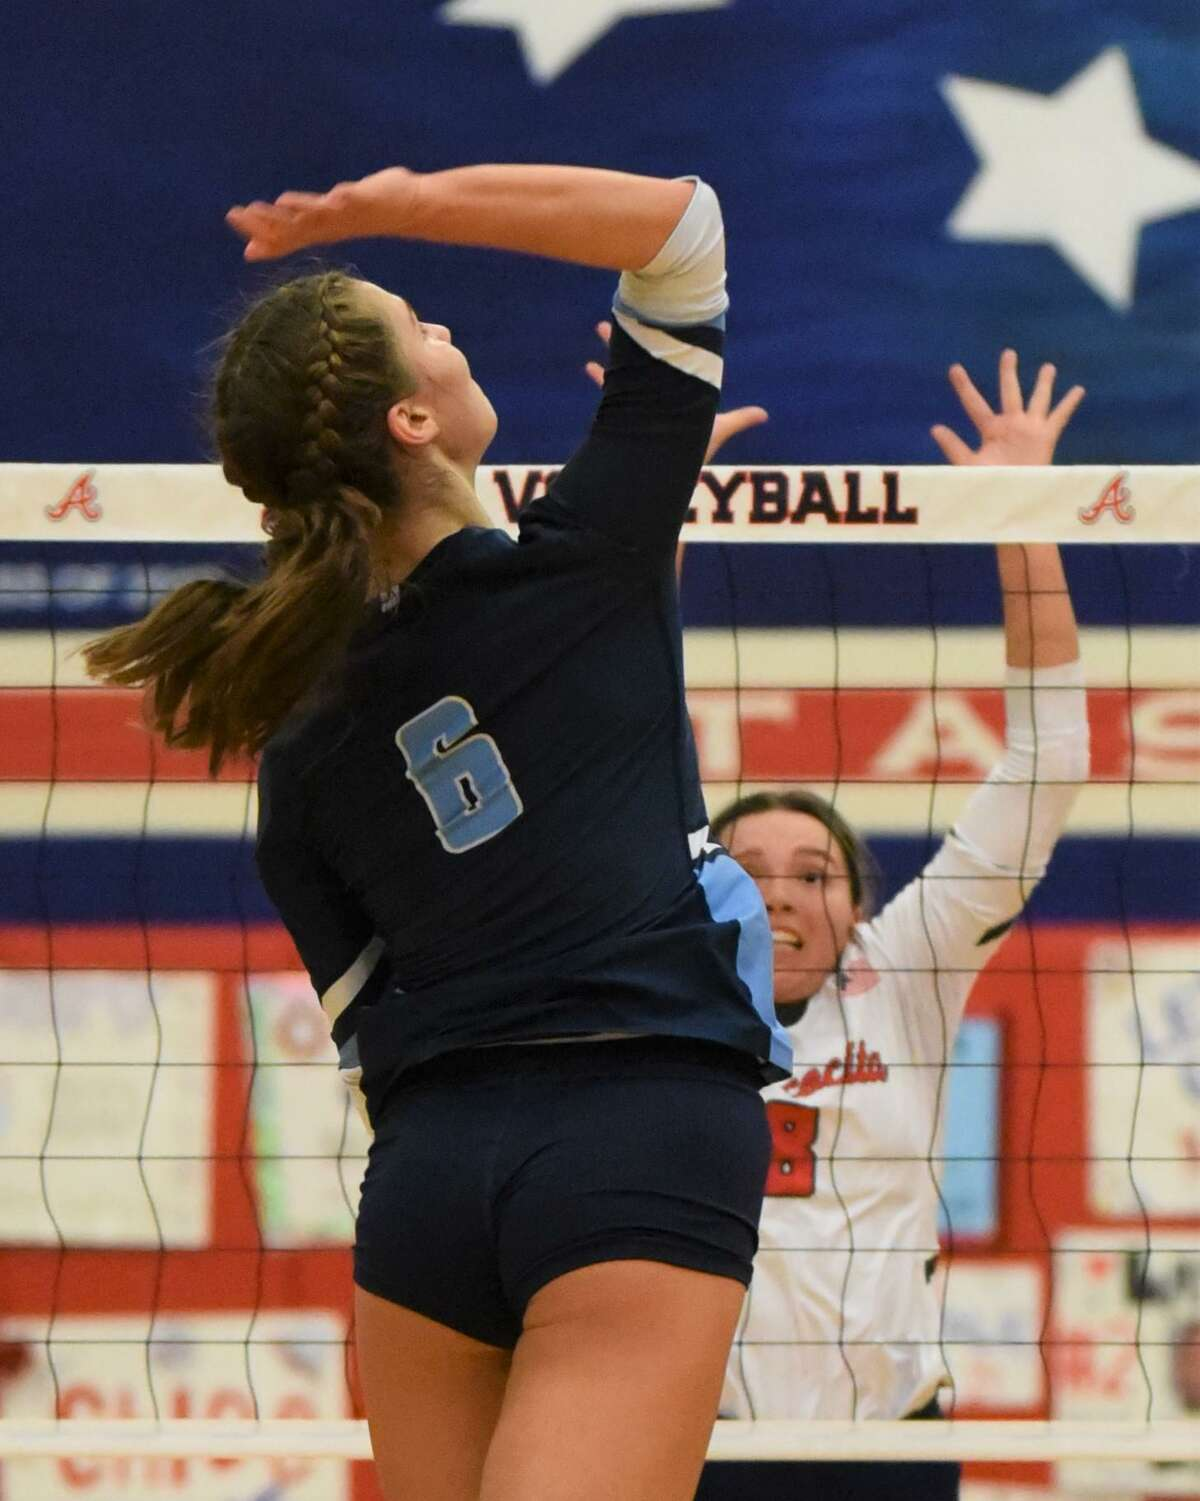 Kingwood senior outside hitter Sophie Ocampo goes up for a kill against Atascocita in a District 21-6A match at the Atascocita gym.